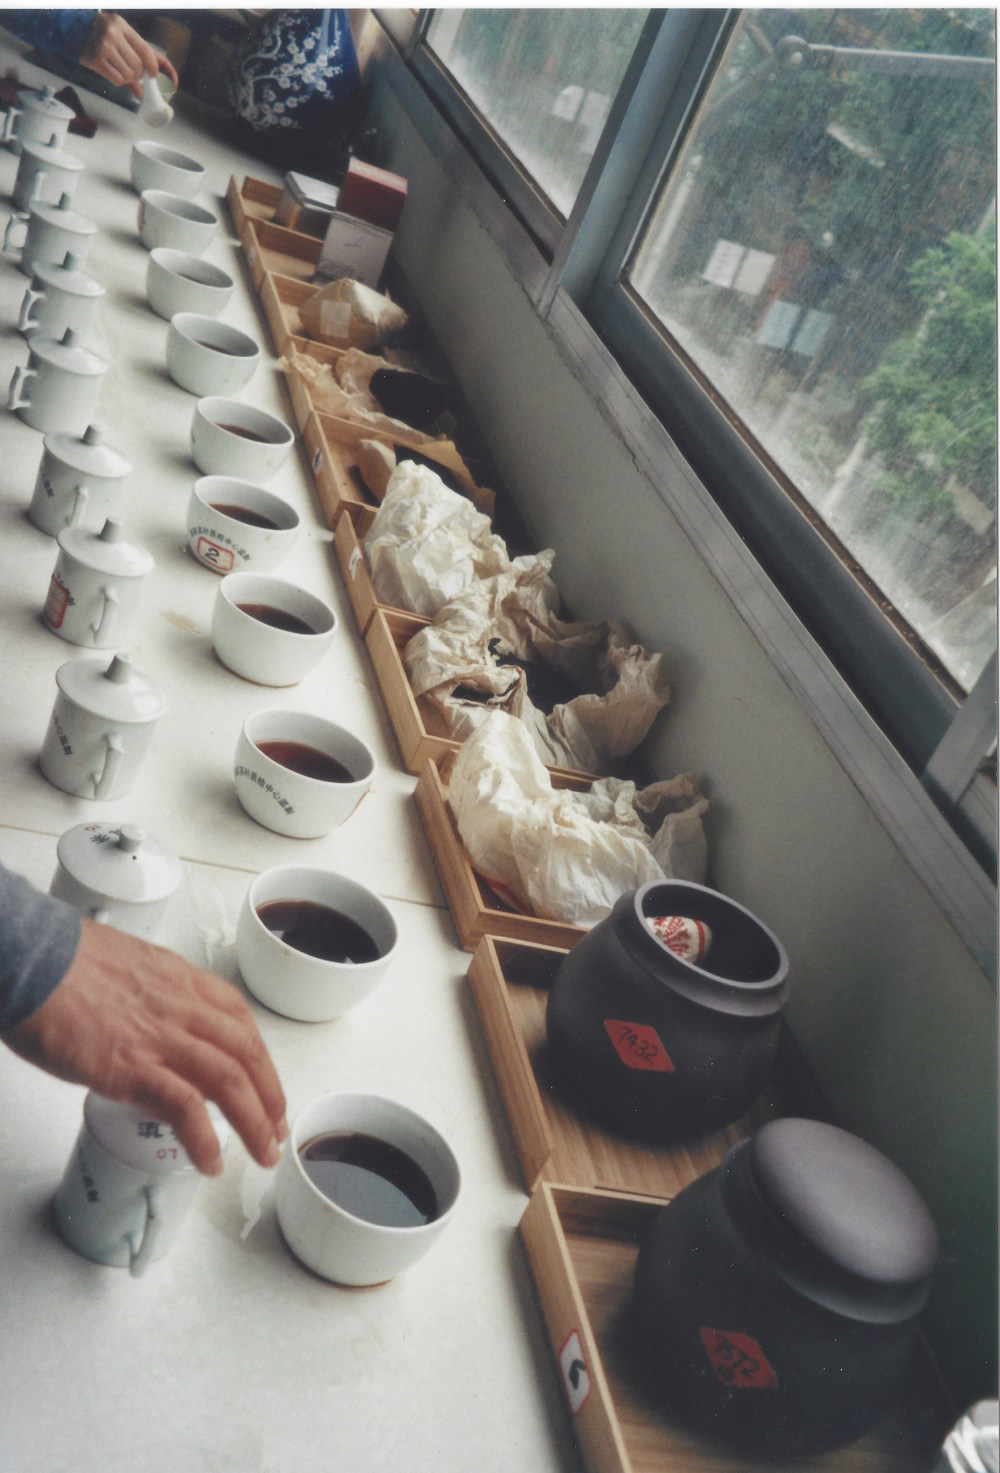 Competition Pu-erh brewing, Kunming